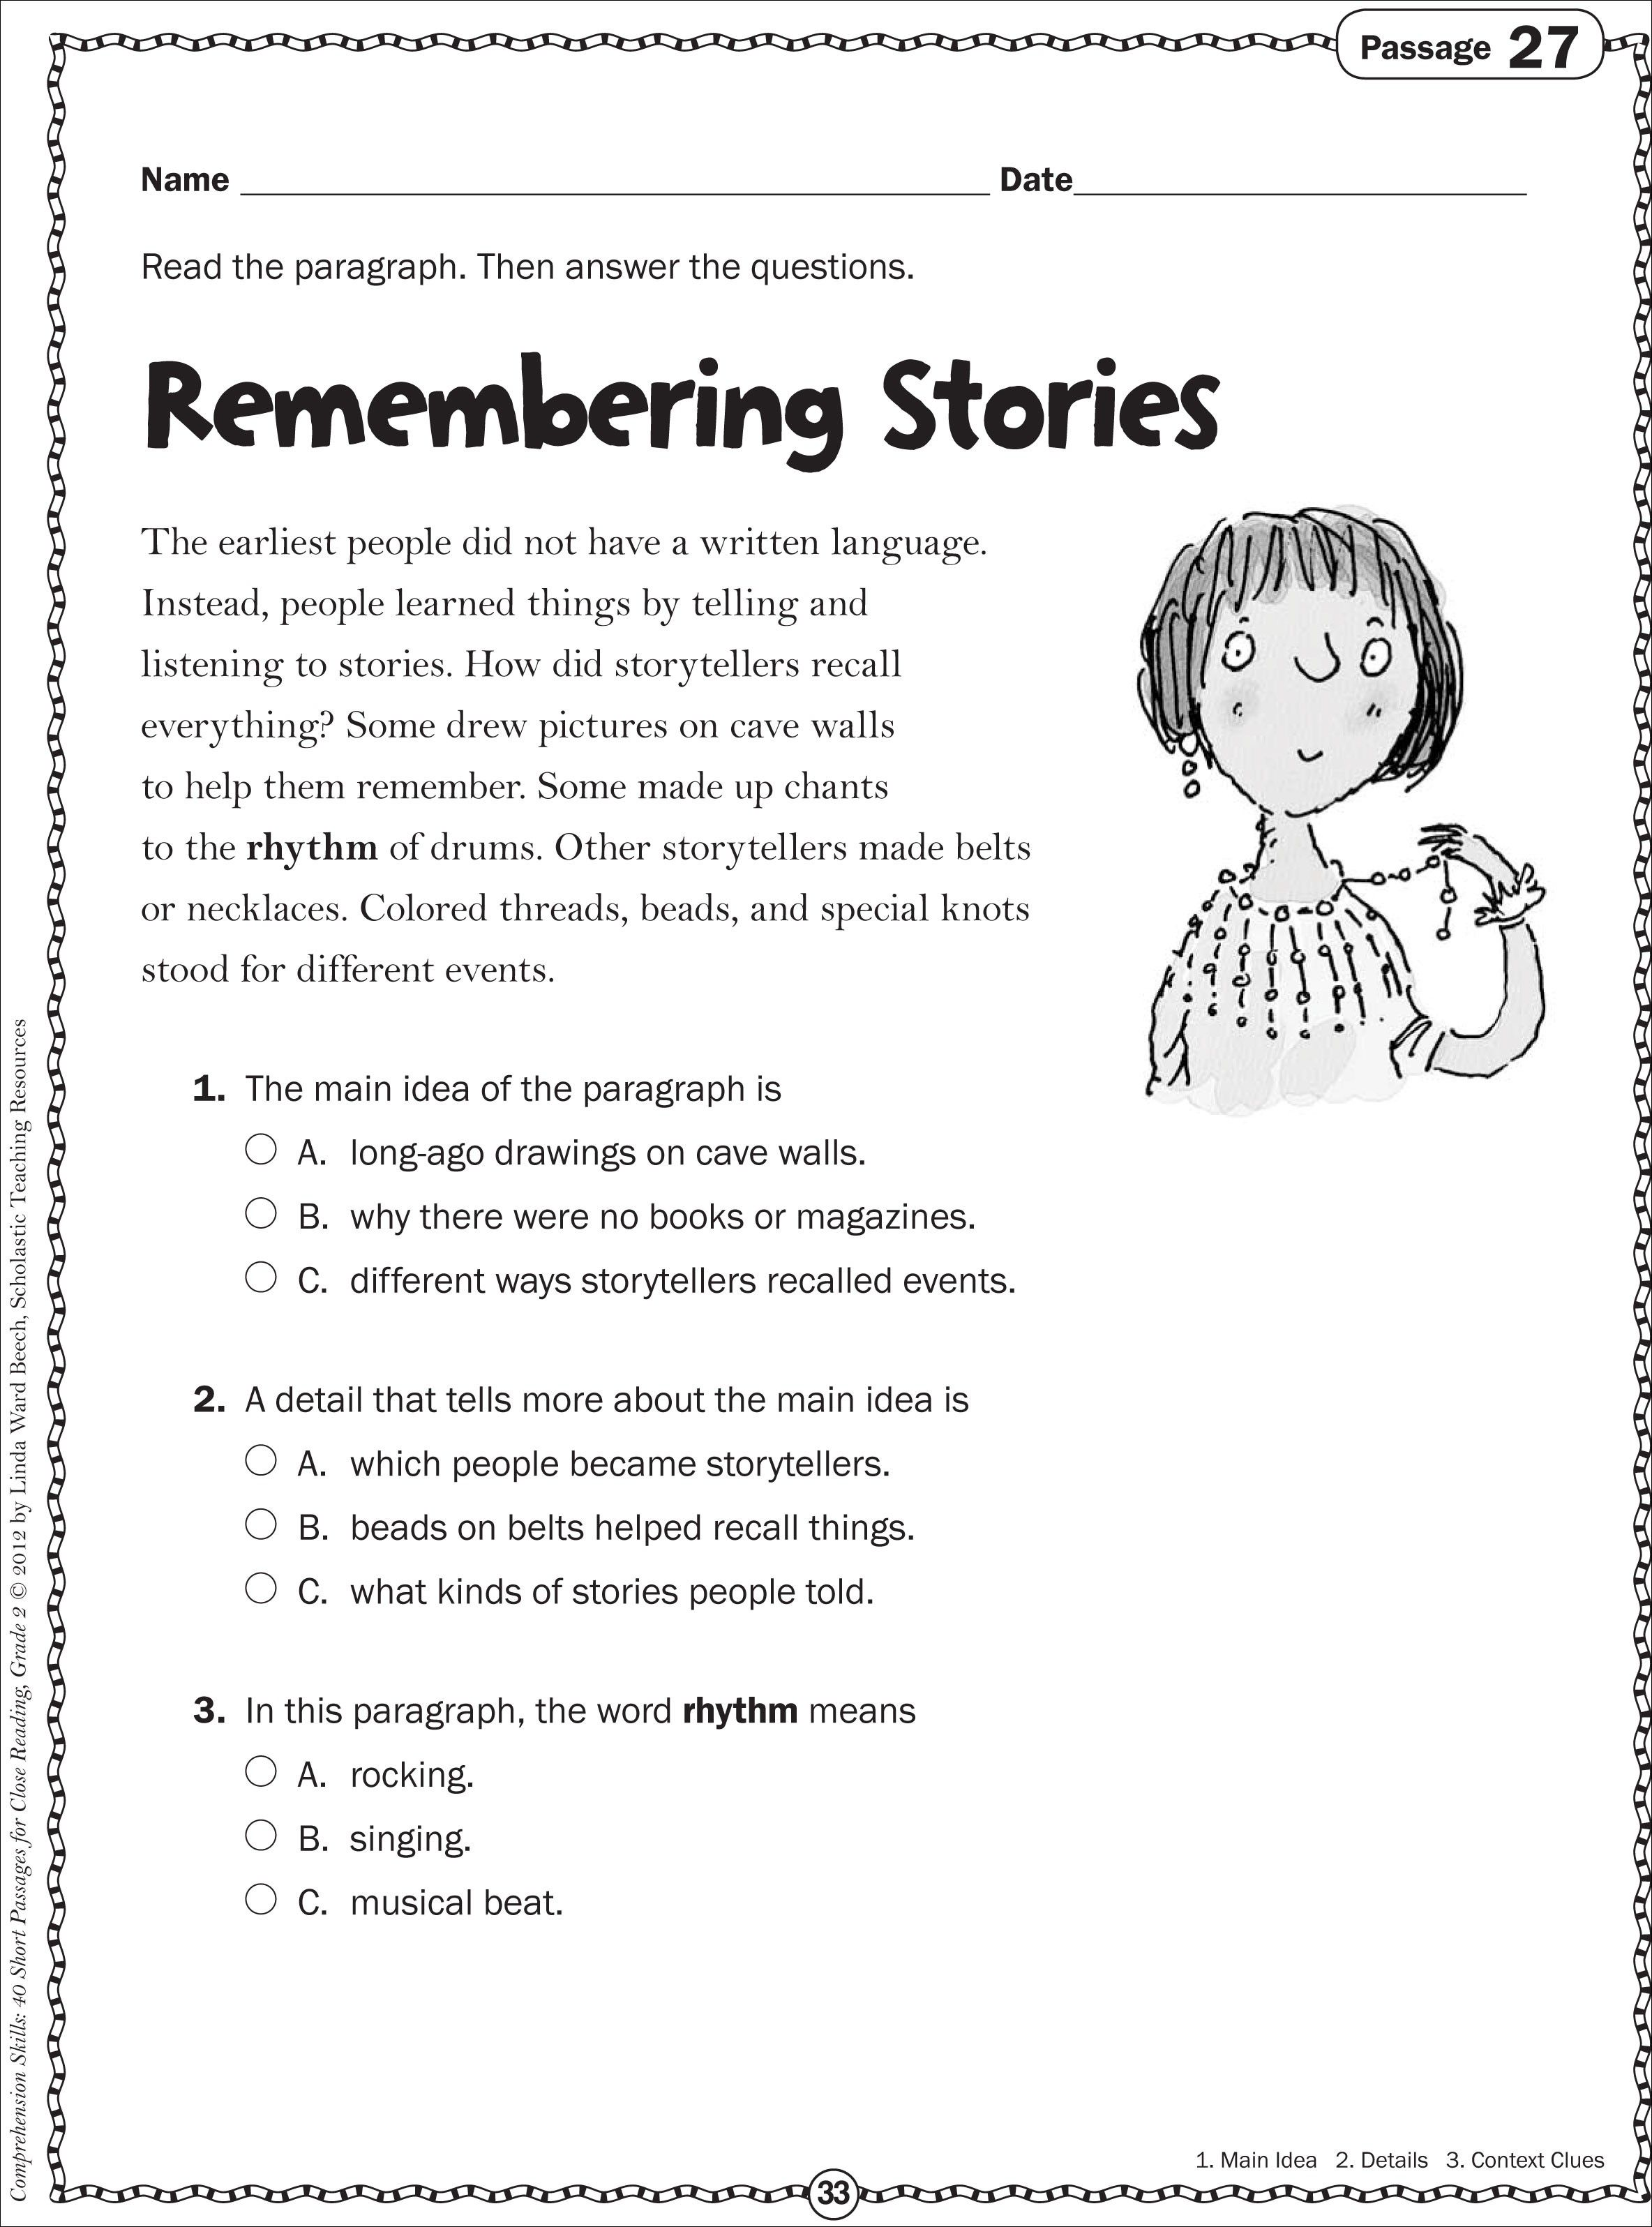 Worksheets Free Reading Comprehension Worksheets 2nd Grade grade 2 reading passages memarchoapraga school pinterest improve comprehensionfree printable worksheetsreading